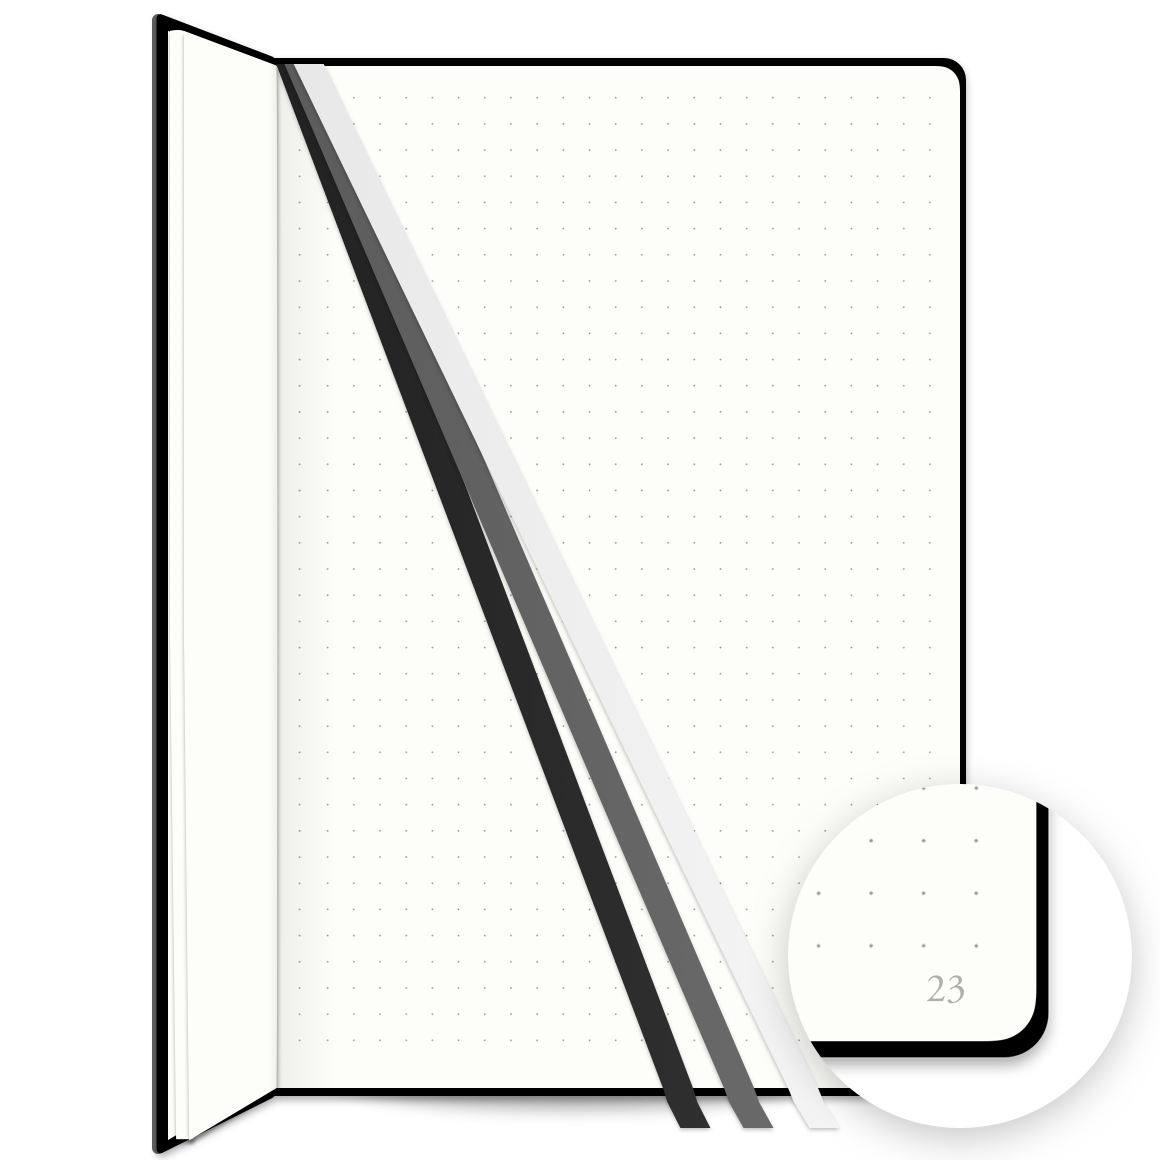 Bullet Journal Notebook Features 3 Bookmarks and numbered pages